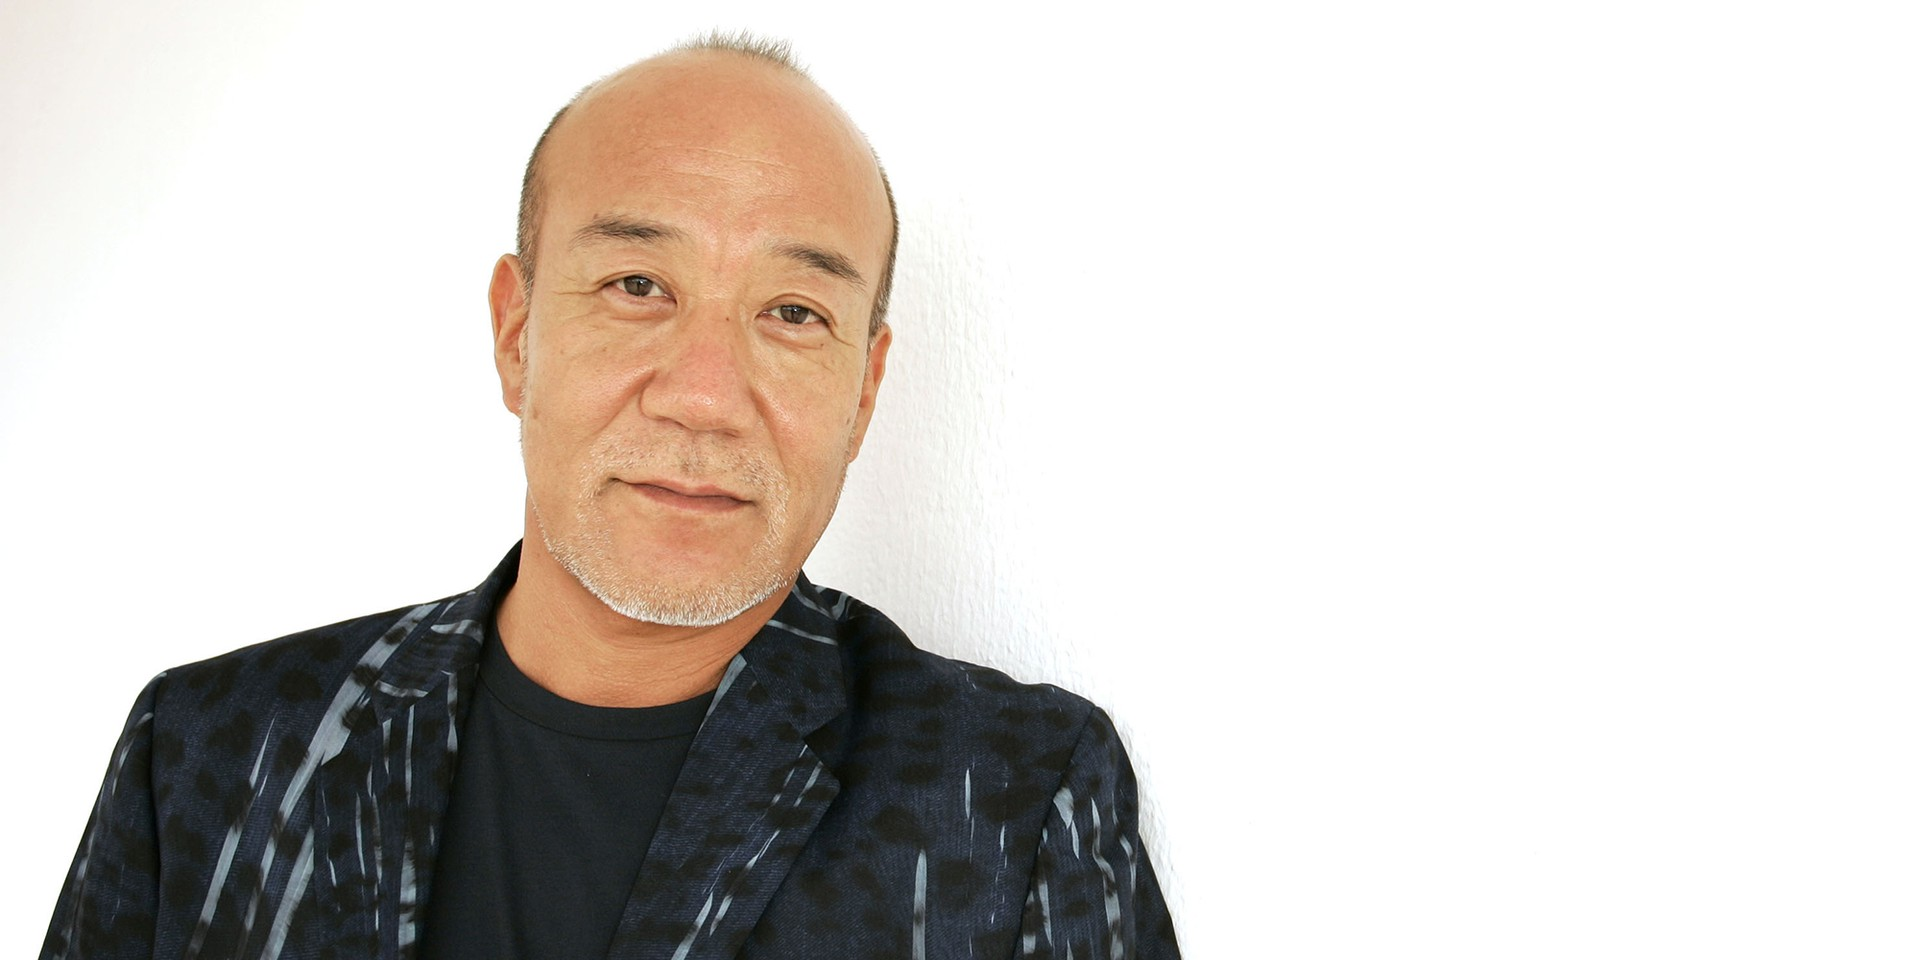 Joe Hisaishi to perform in Singapore next year with the Singapore Symphony Orchestra